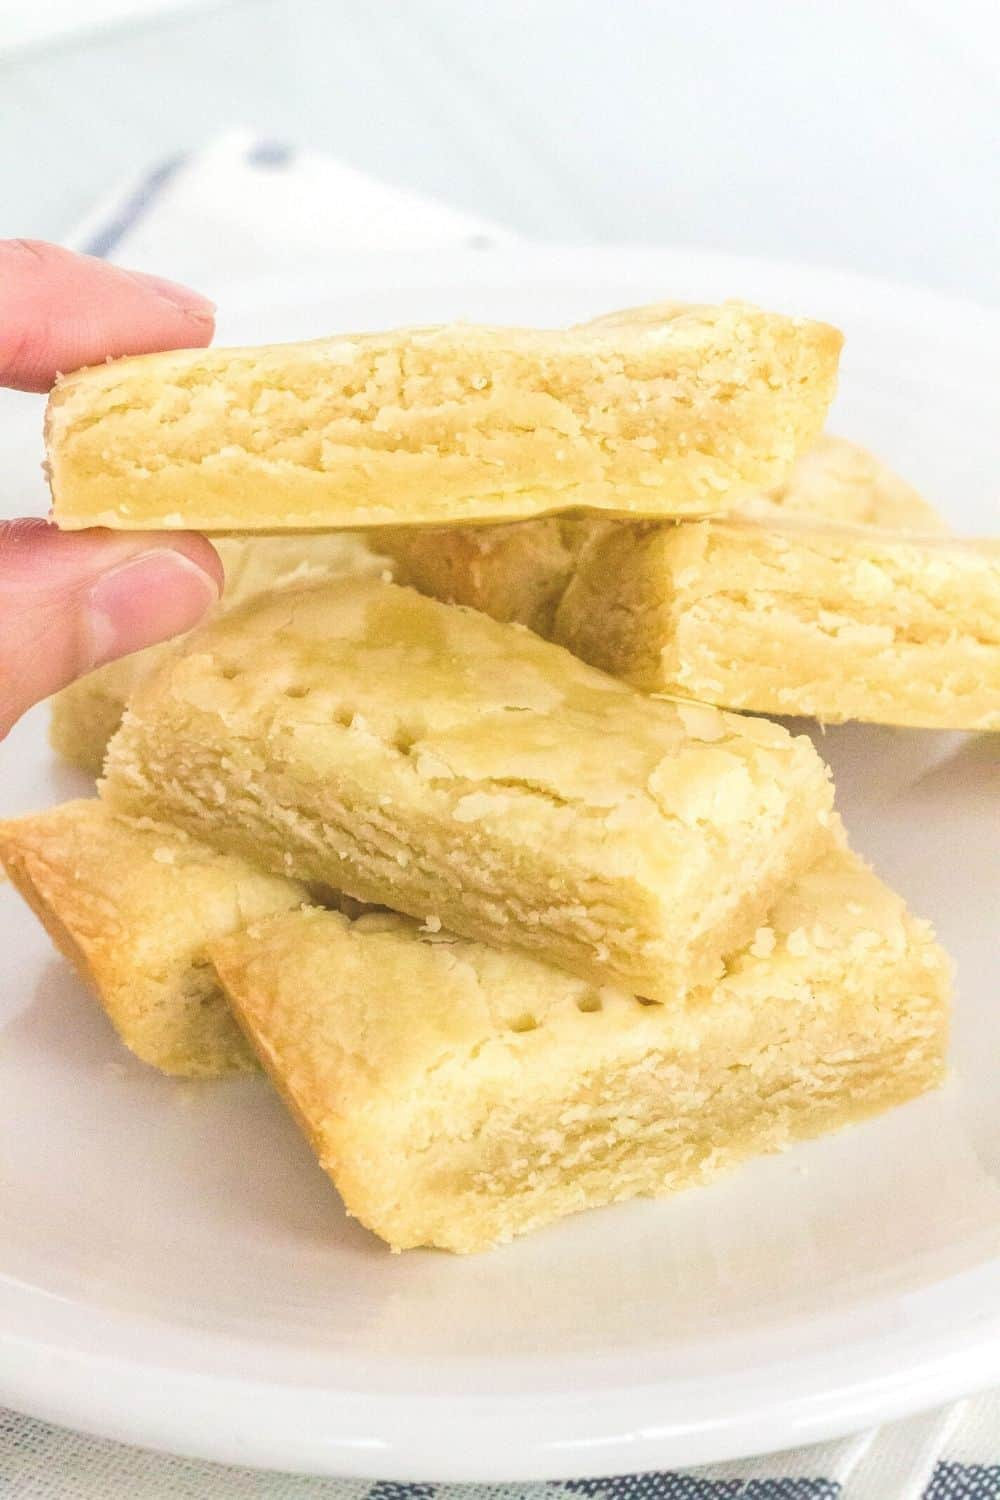 a woman's fingers lift a scottish shortbread cookie from a pile of cookies served on a white plate